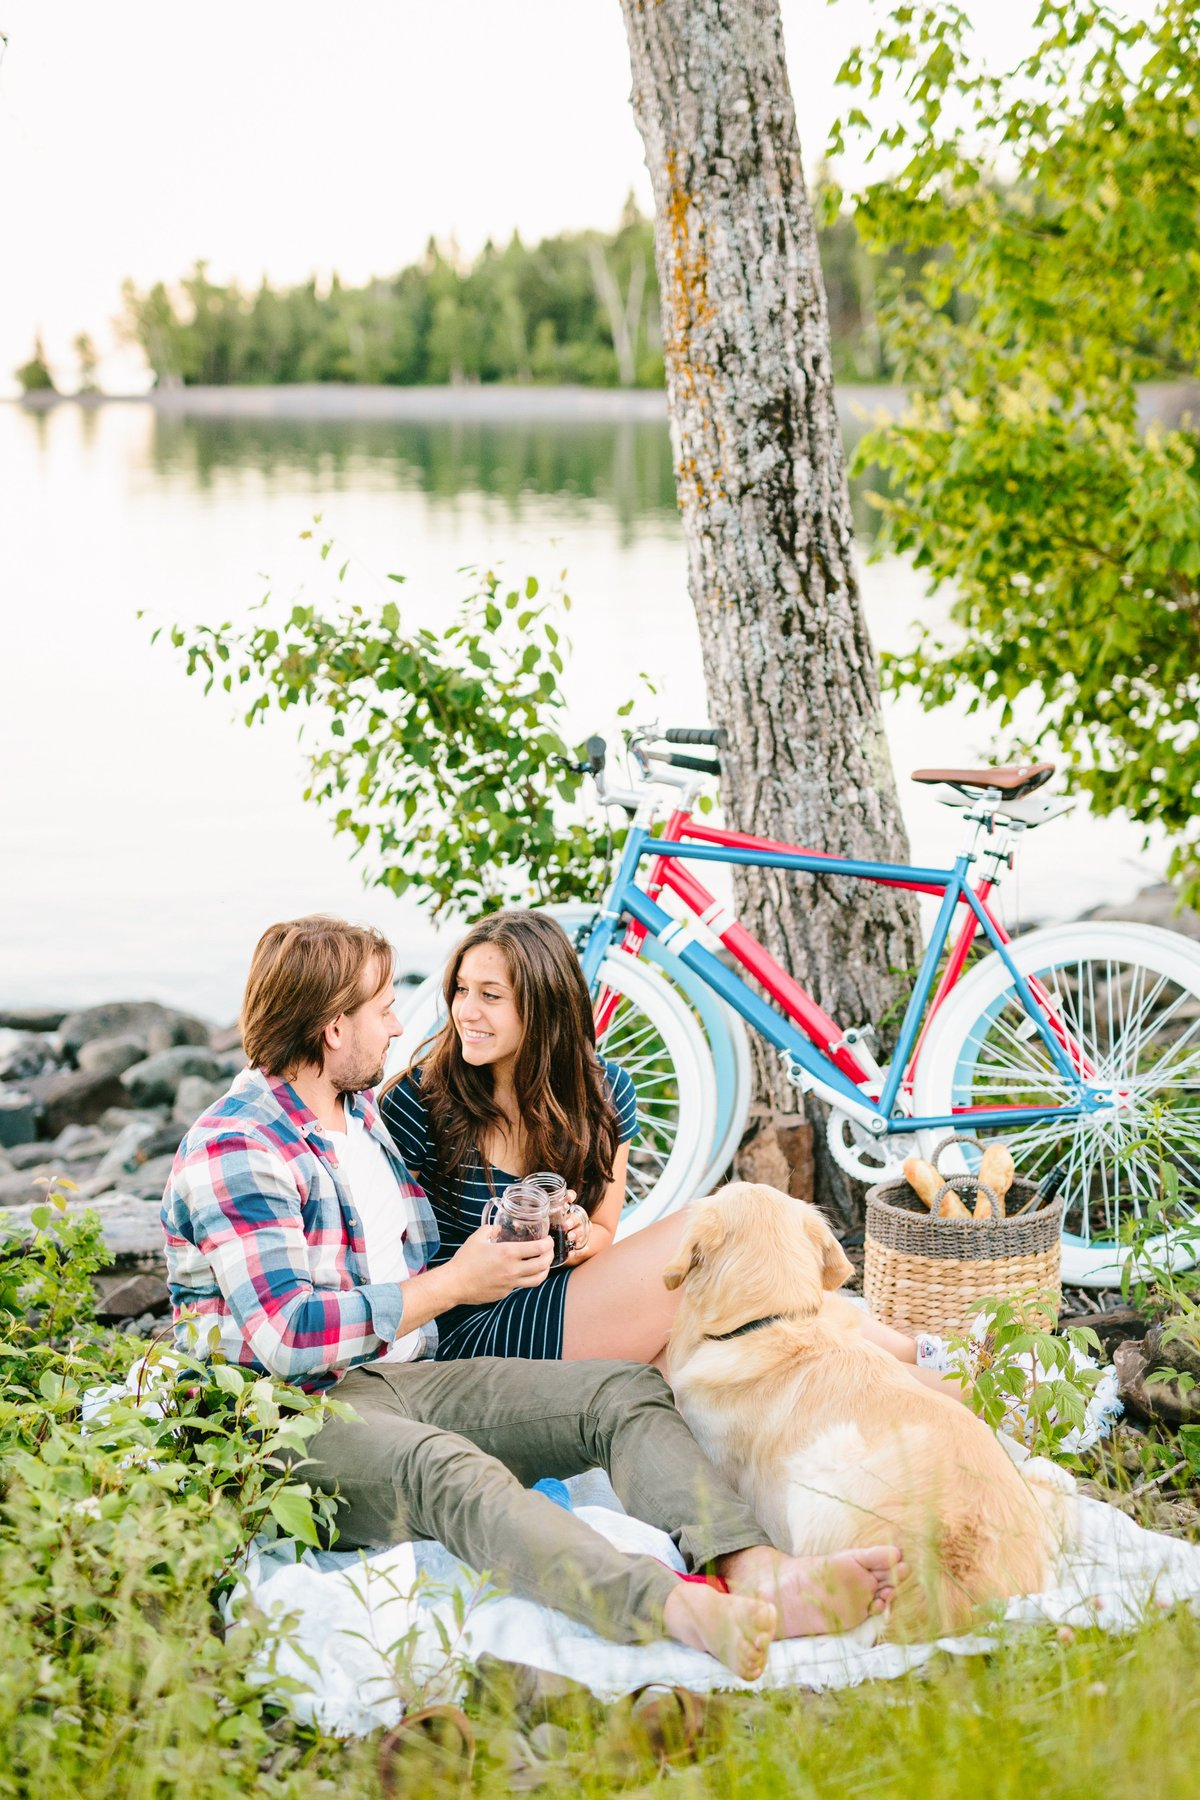 Best California Engagement Photographer-Jodee Debes Photography-203